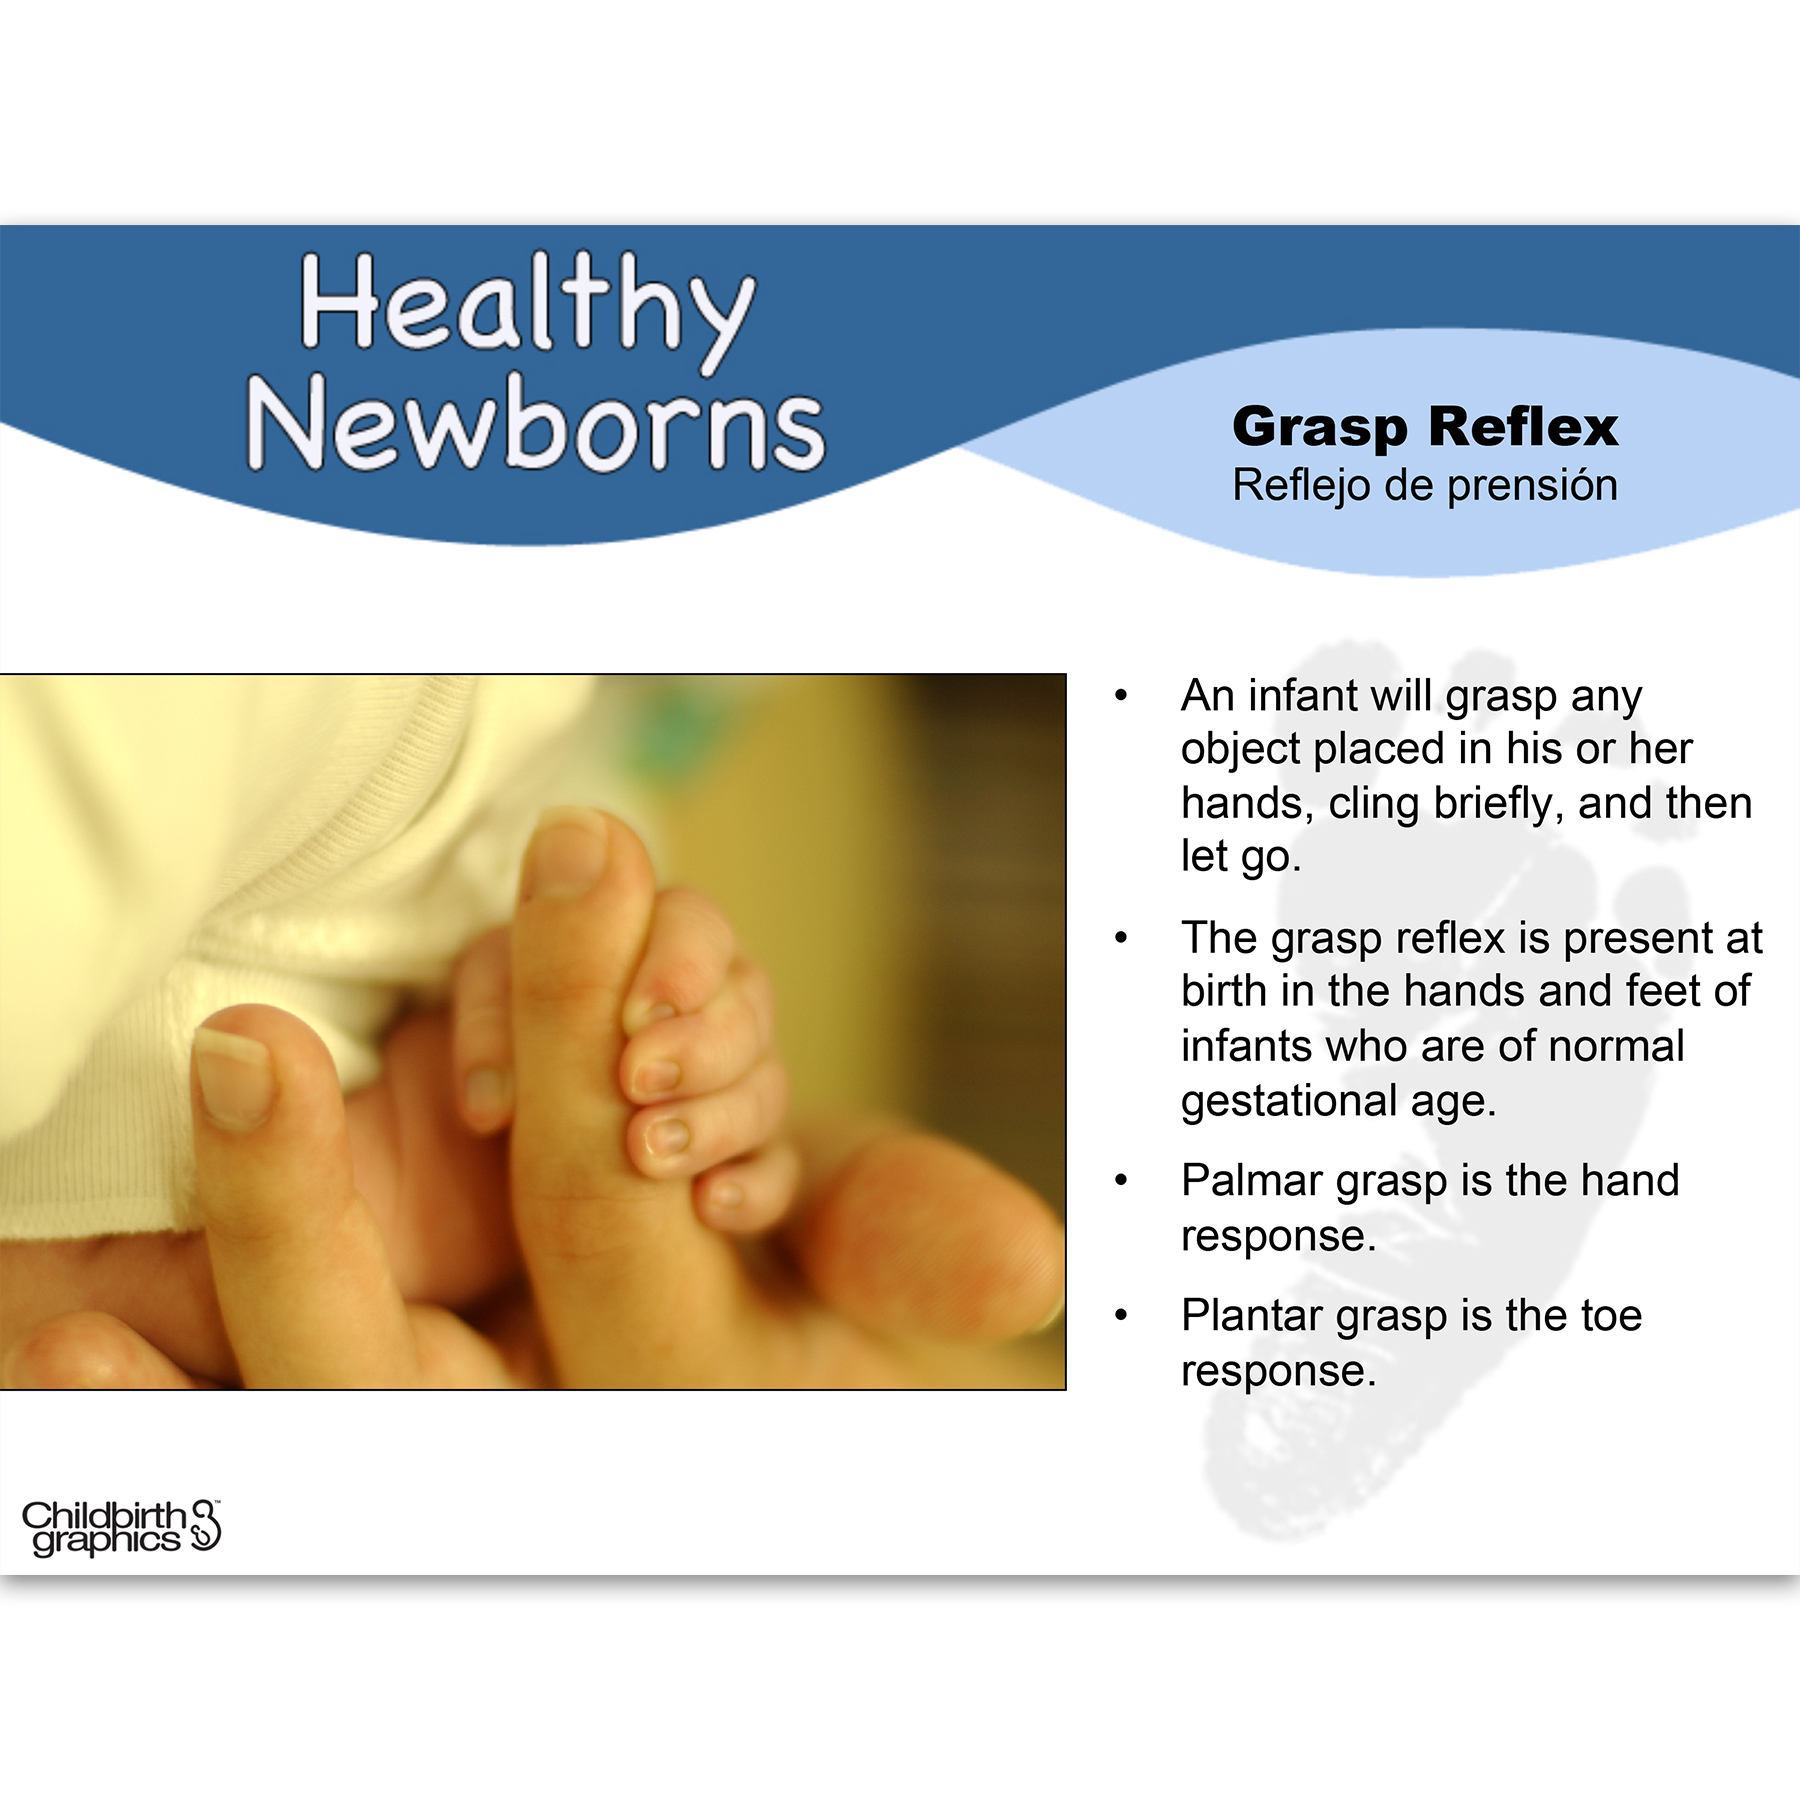 Healthy Newborns PowerPoint frame showing photo of grasp reflex and explanation, Childbirth Graphics 48514